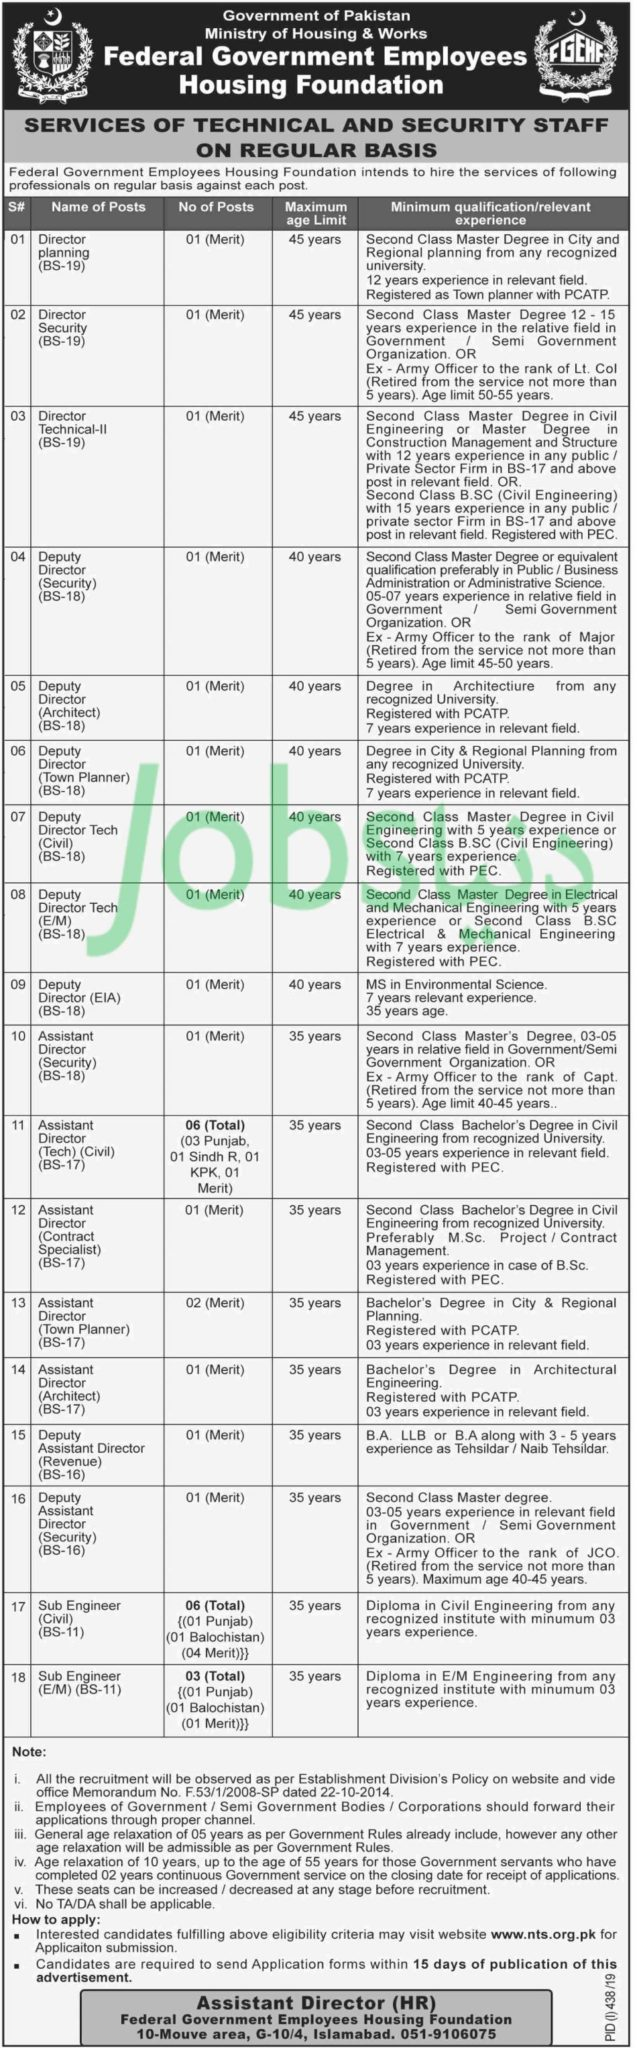 Federal Government Employees Housing Foundation Islamabad Salaries